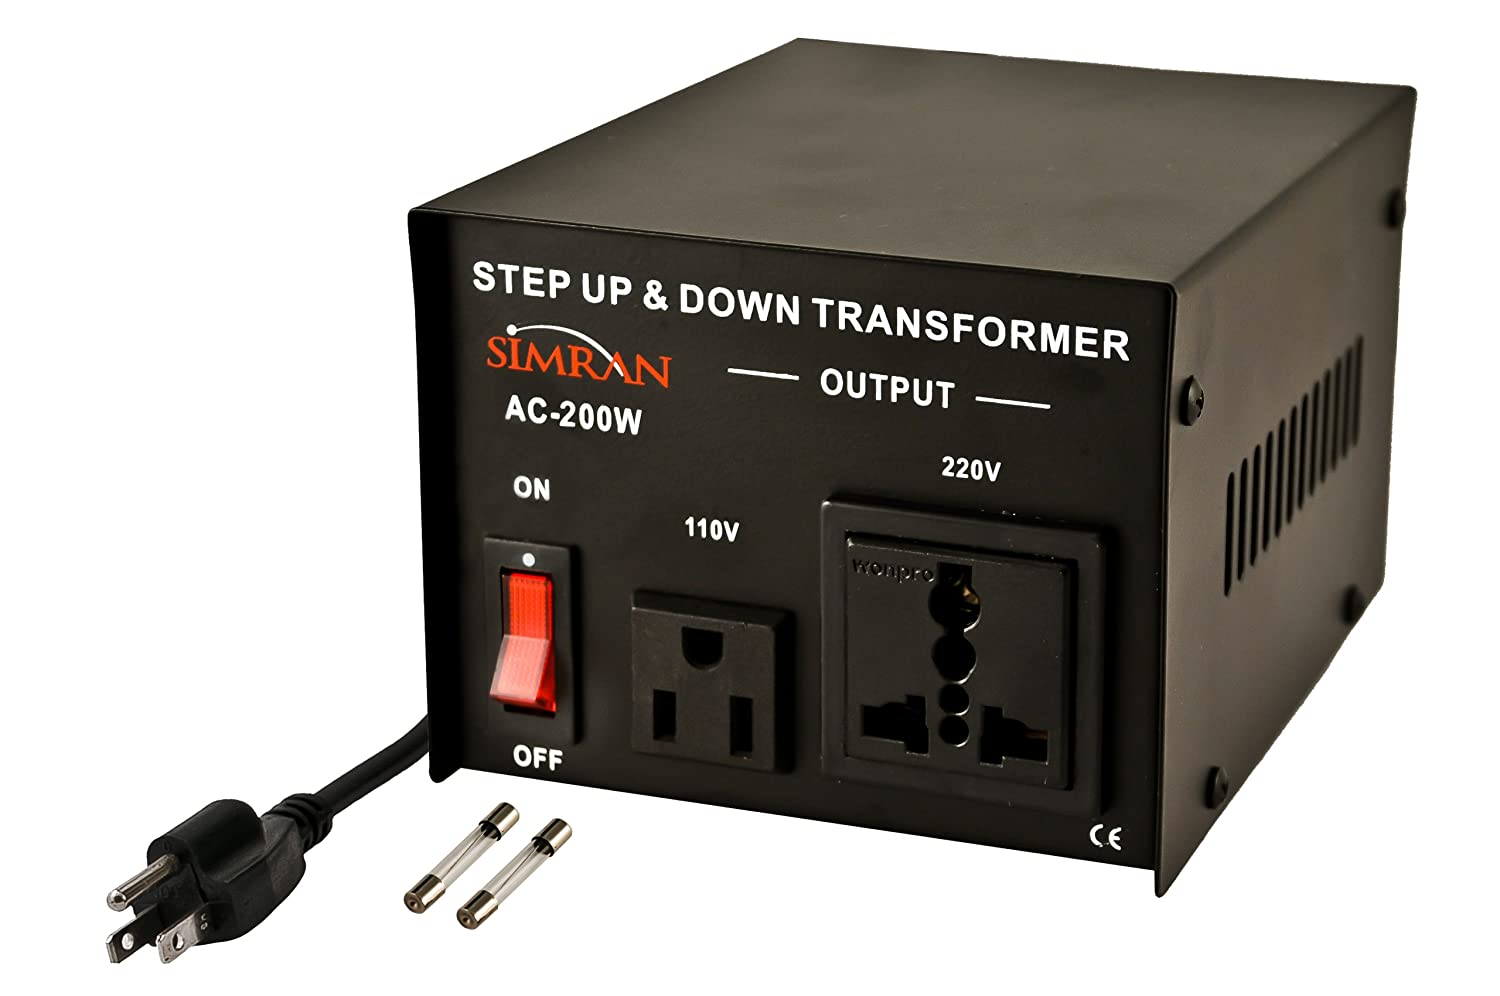 simran ac 750 voltage power converter step up down transformer 110 simran ac 750 voltage power converter step up down transformer 110 volt 220 volt 750 watt black electrical boxes amazon com